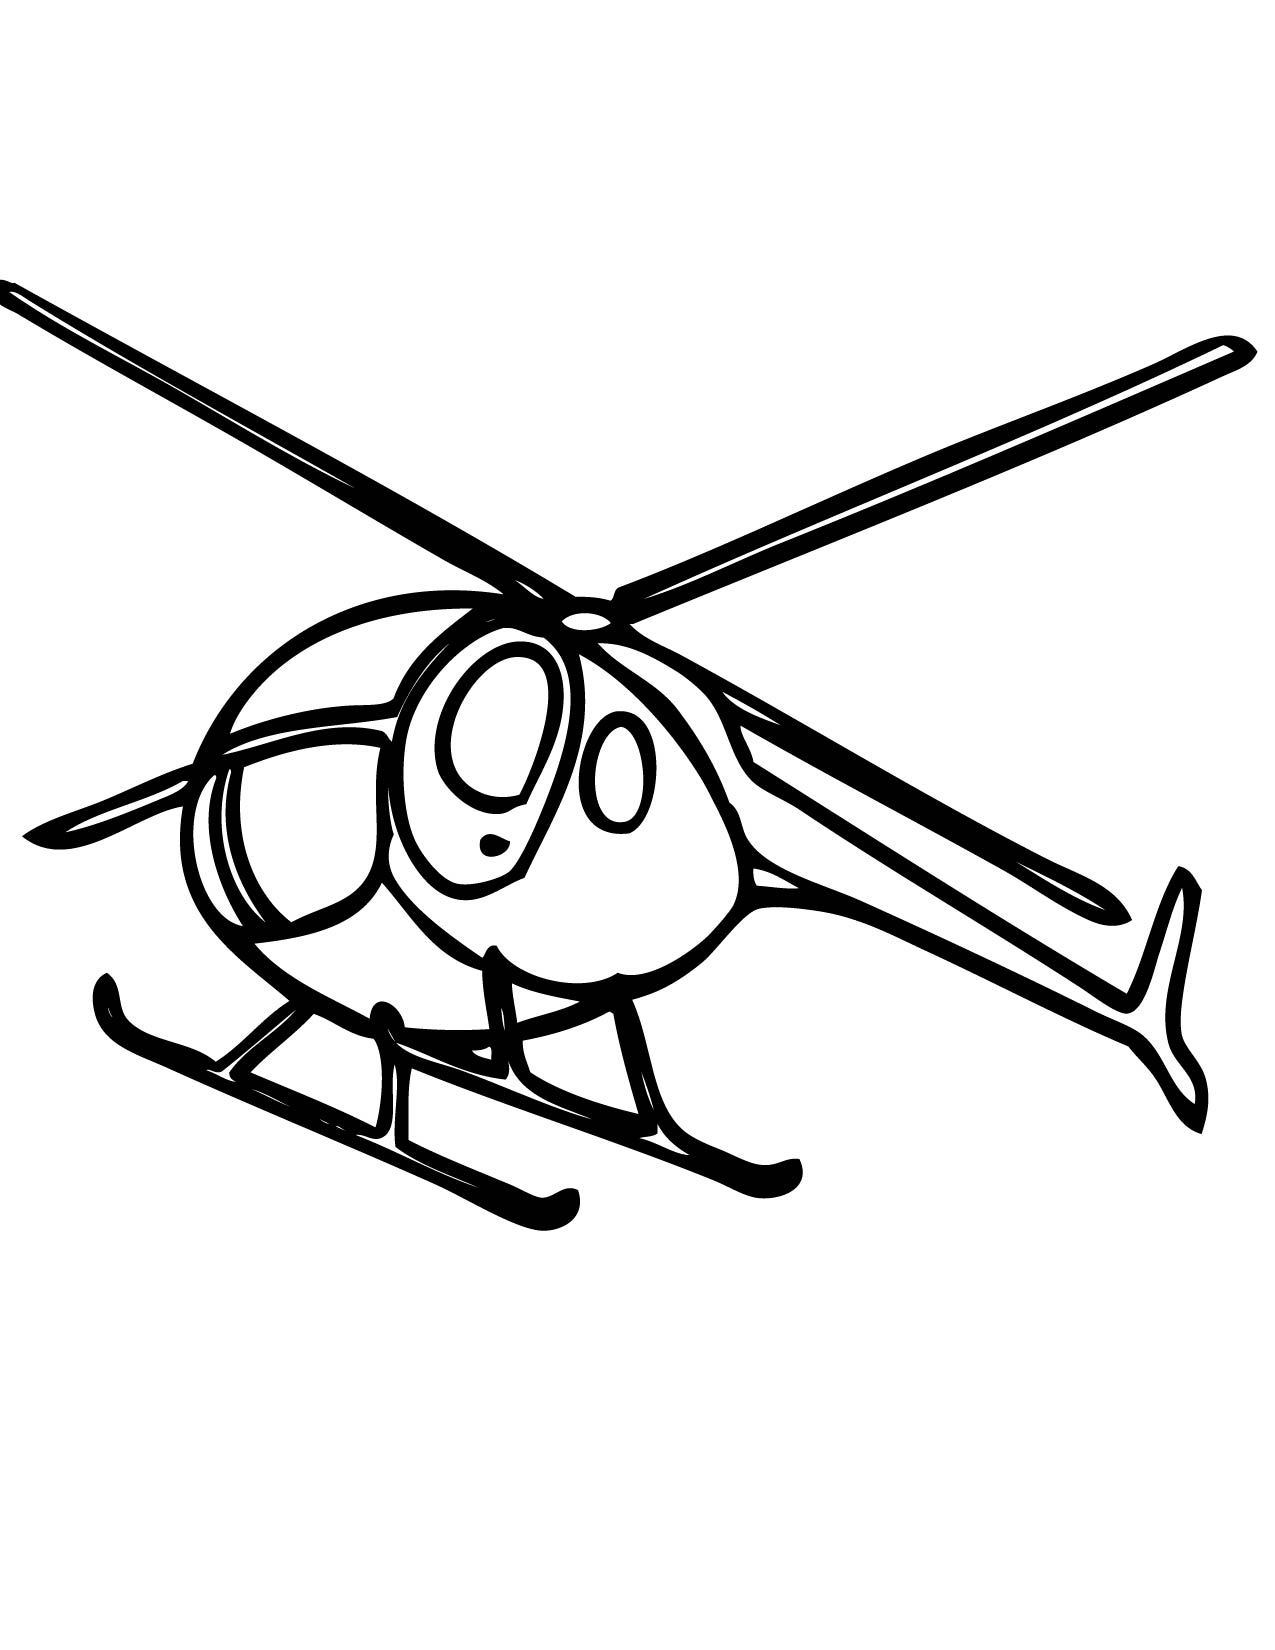 1275x1650 Helicopters With A Small Form Factor And Modern